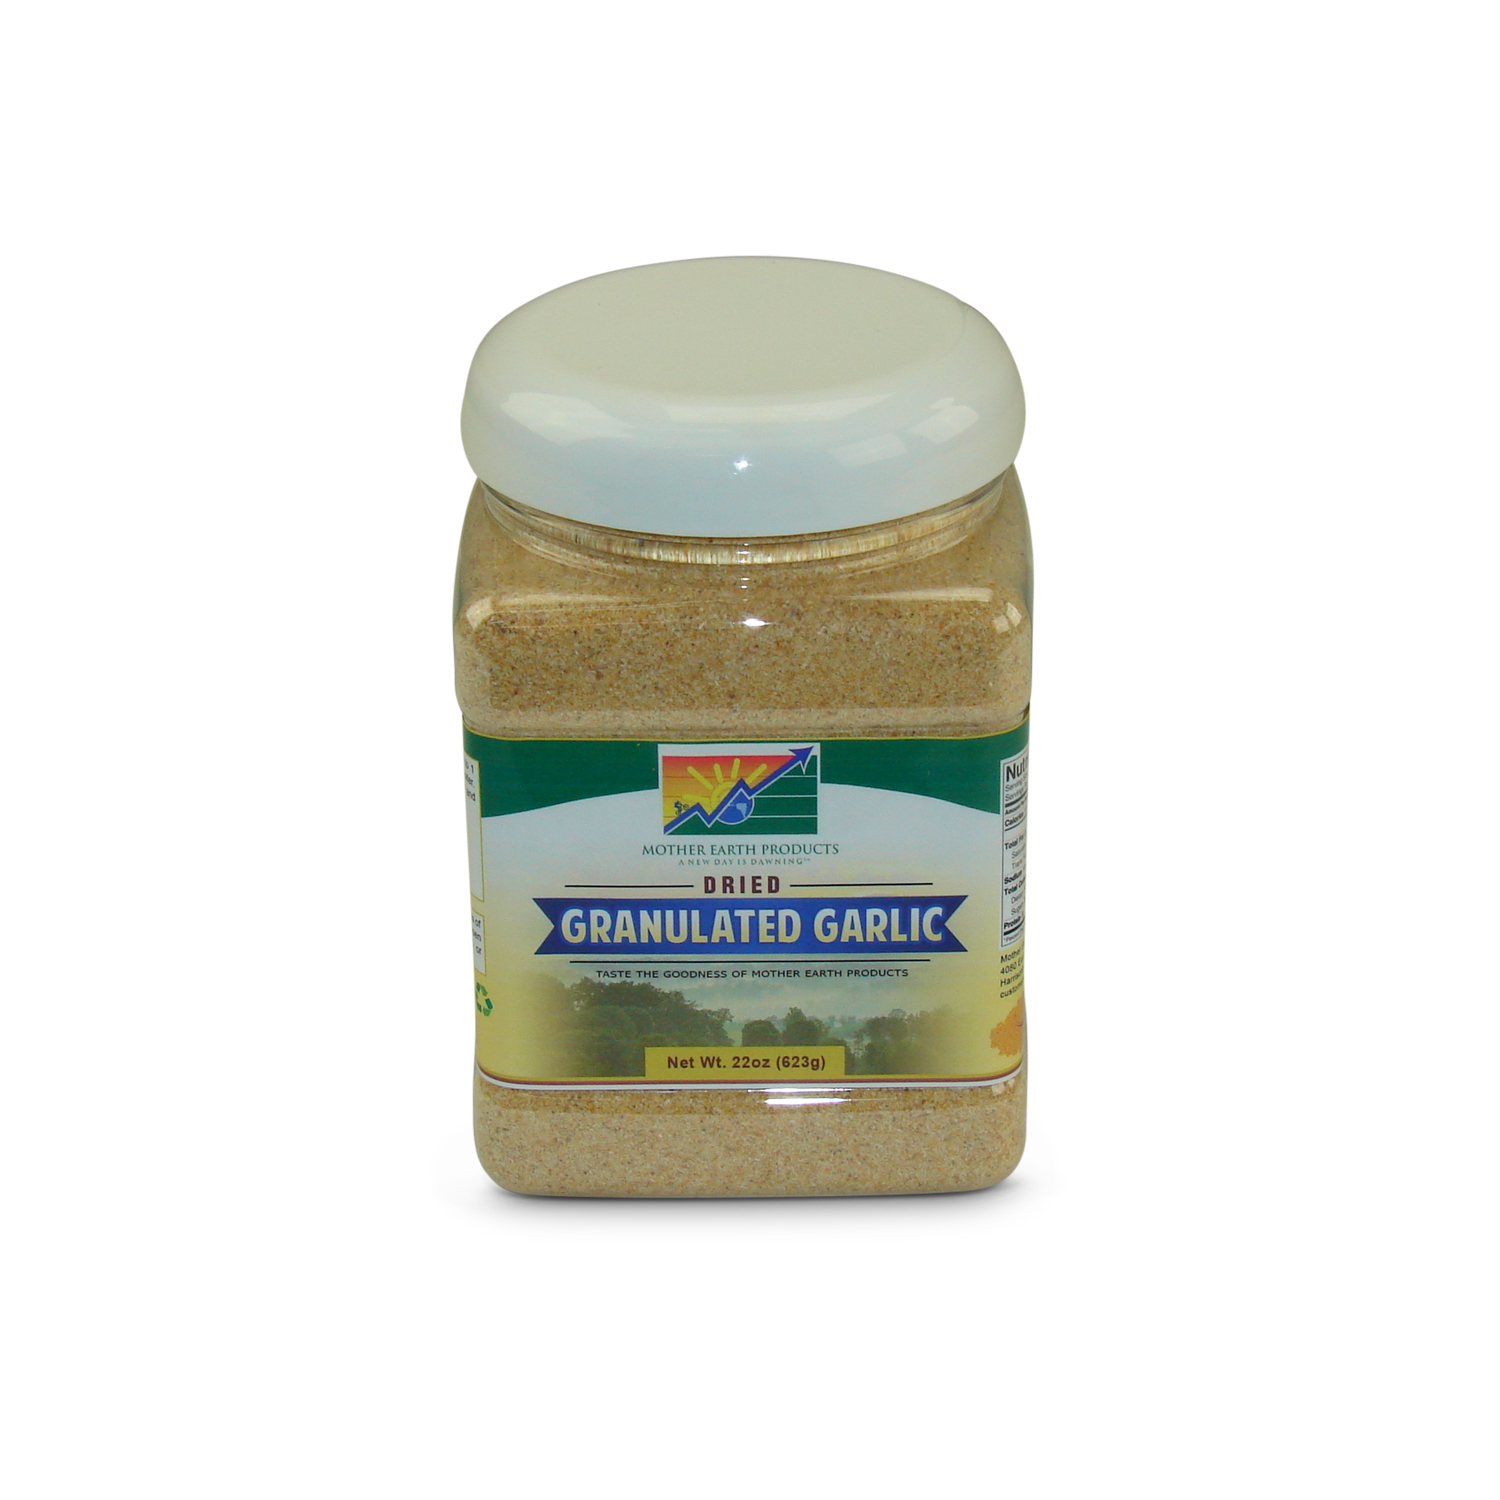 Mother Earth Products Dehydrated Granulated Garlic, jar by Mother Earth Products